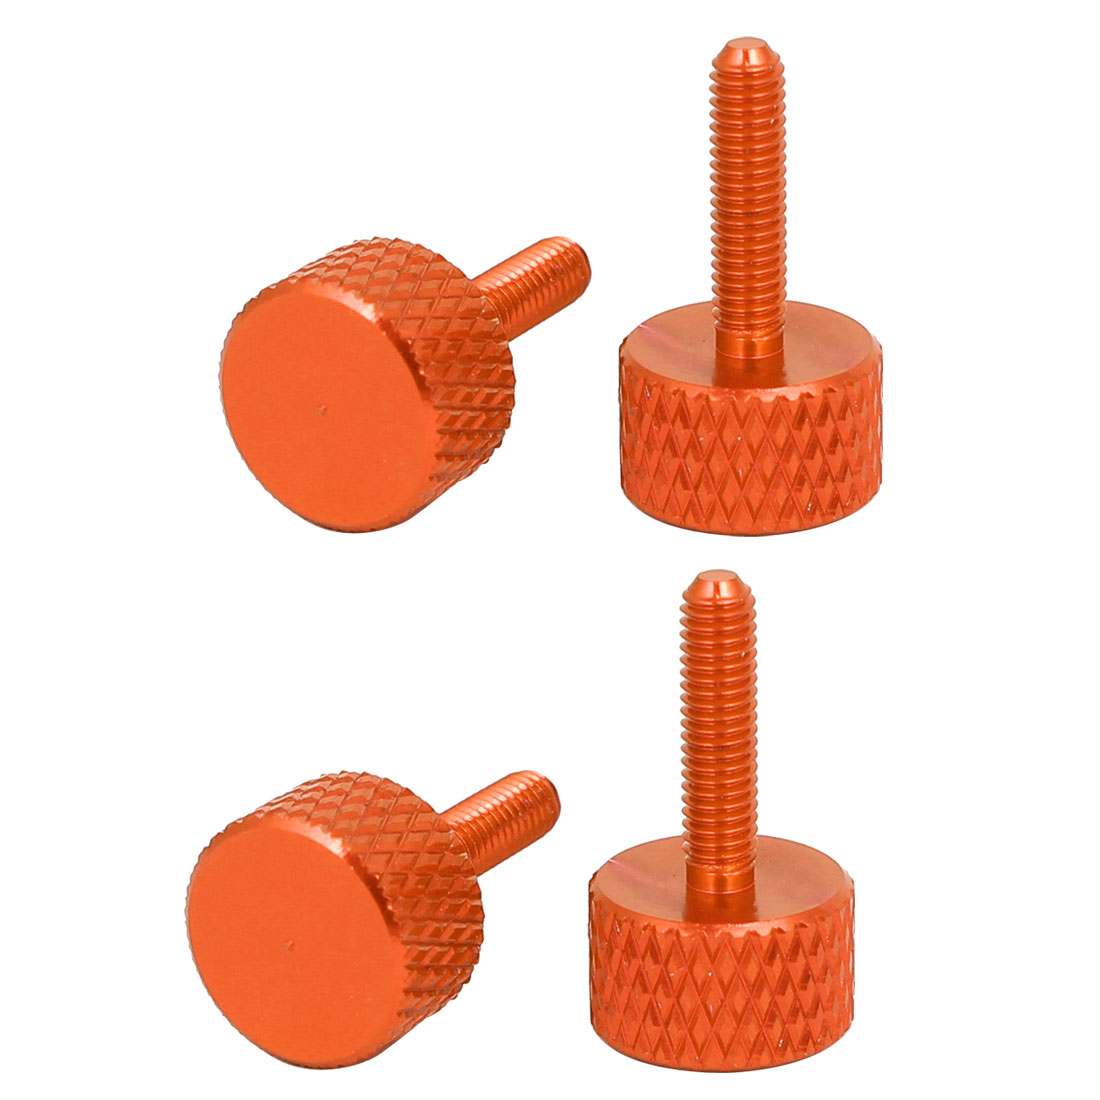 Computer PC Graphics Card Knurled Head Thumb Screws Orange M3x12mm 4pcs